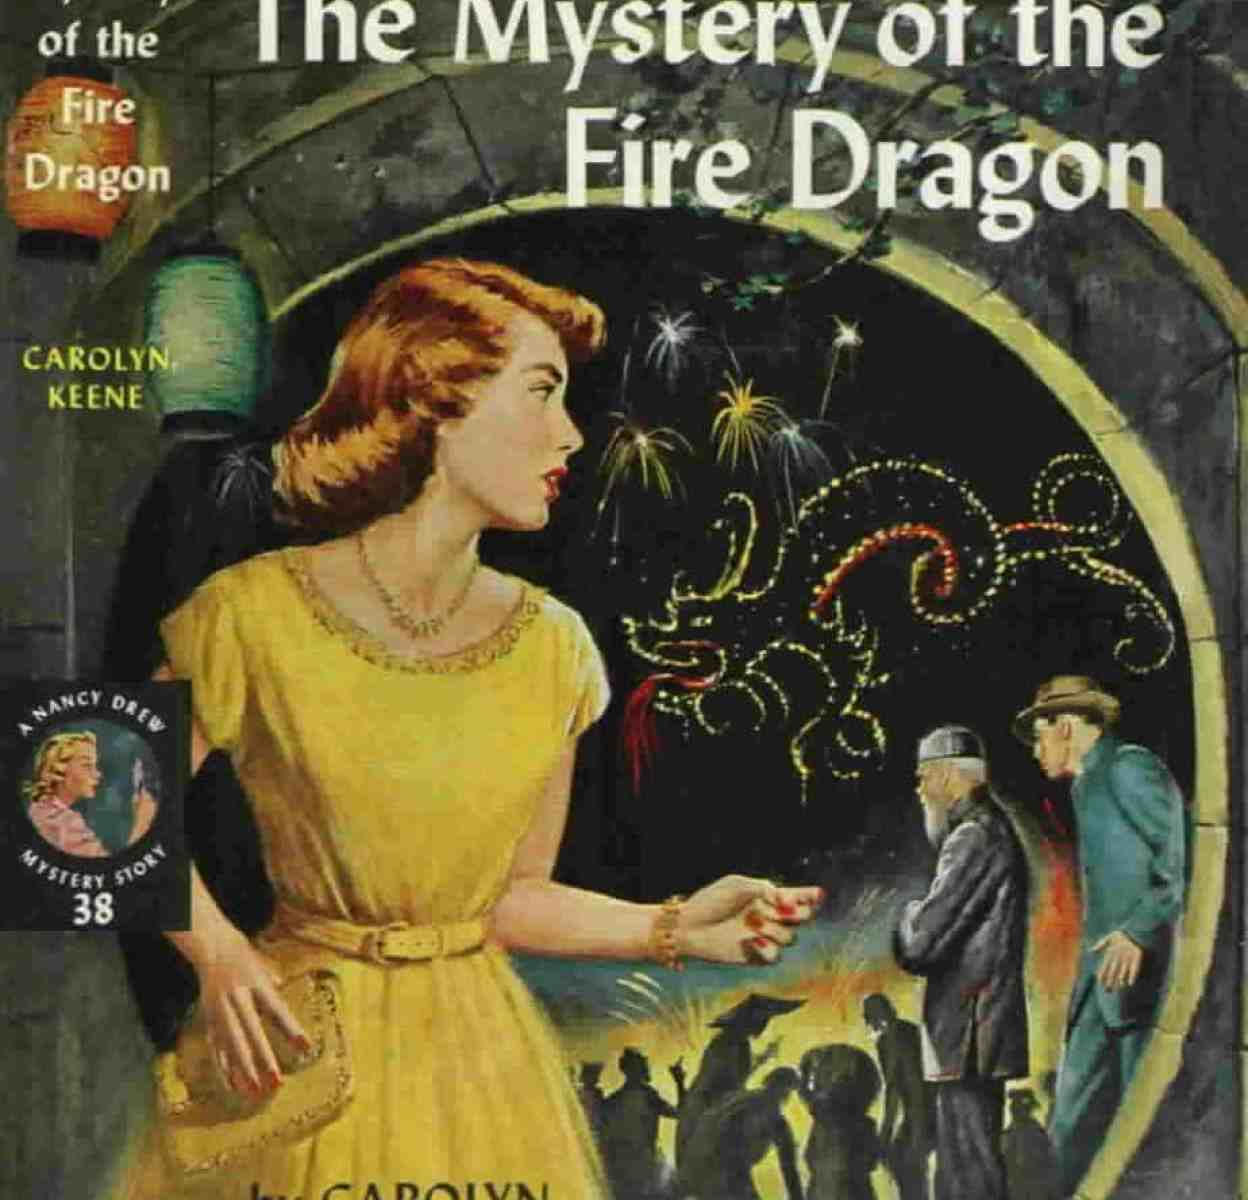 The Mystery of the Fire Dragon detective story